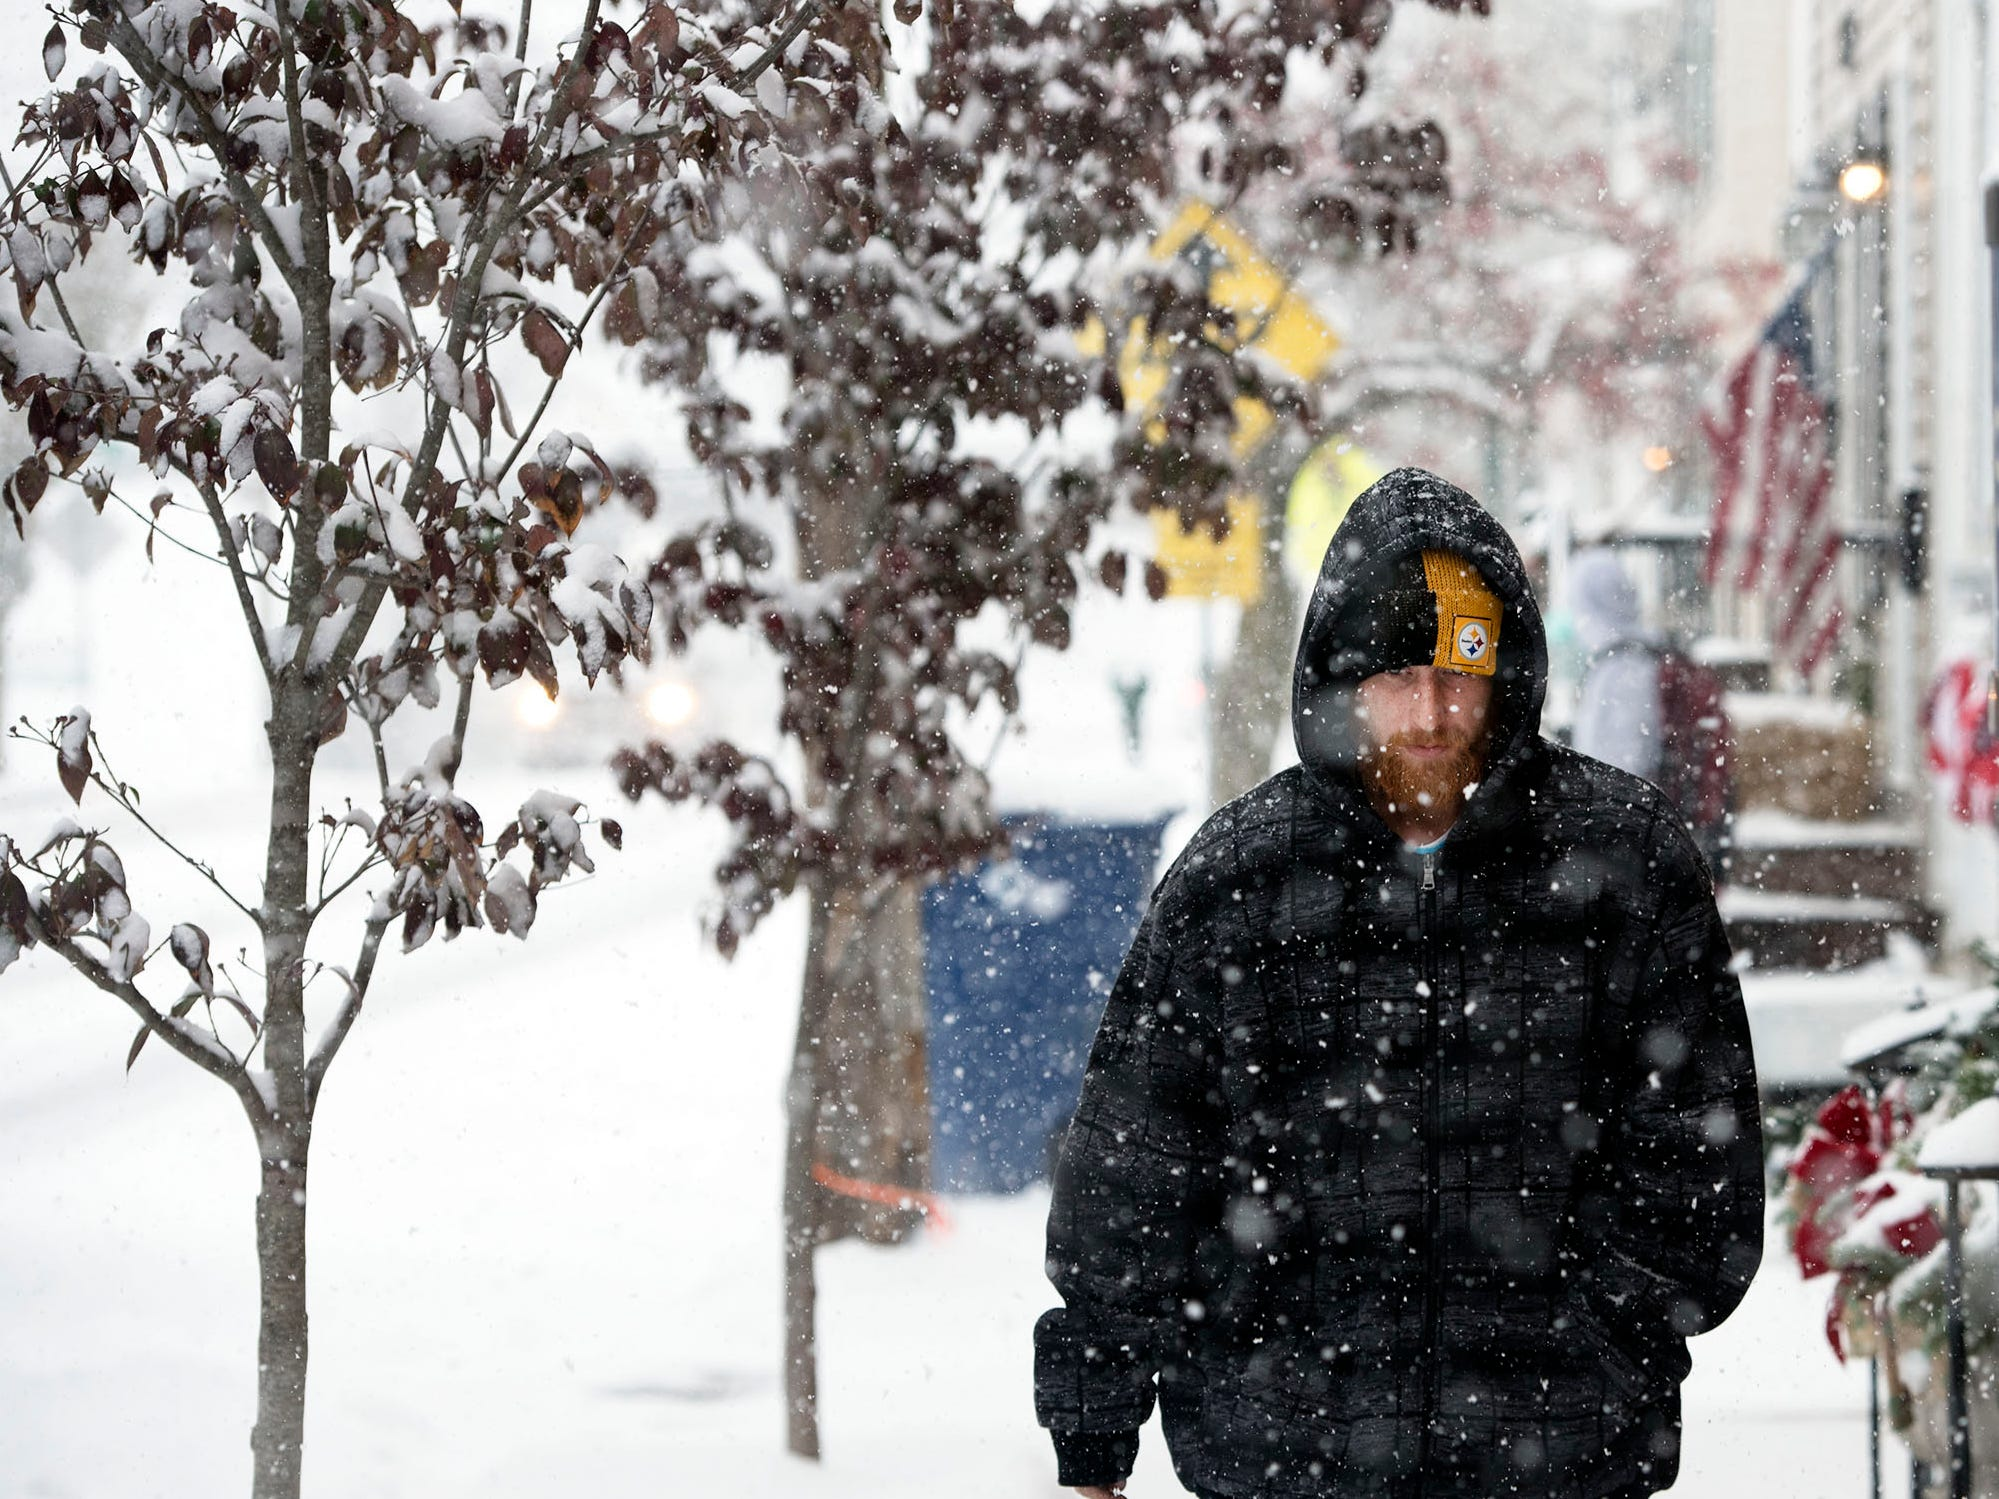 Cody Fittry walks along a snowy sidewalk in Greencastle. Snow started in Franklin County on Thursday morning, November 15, 2018.